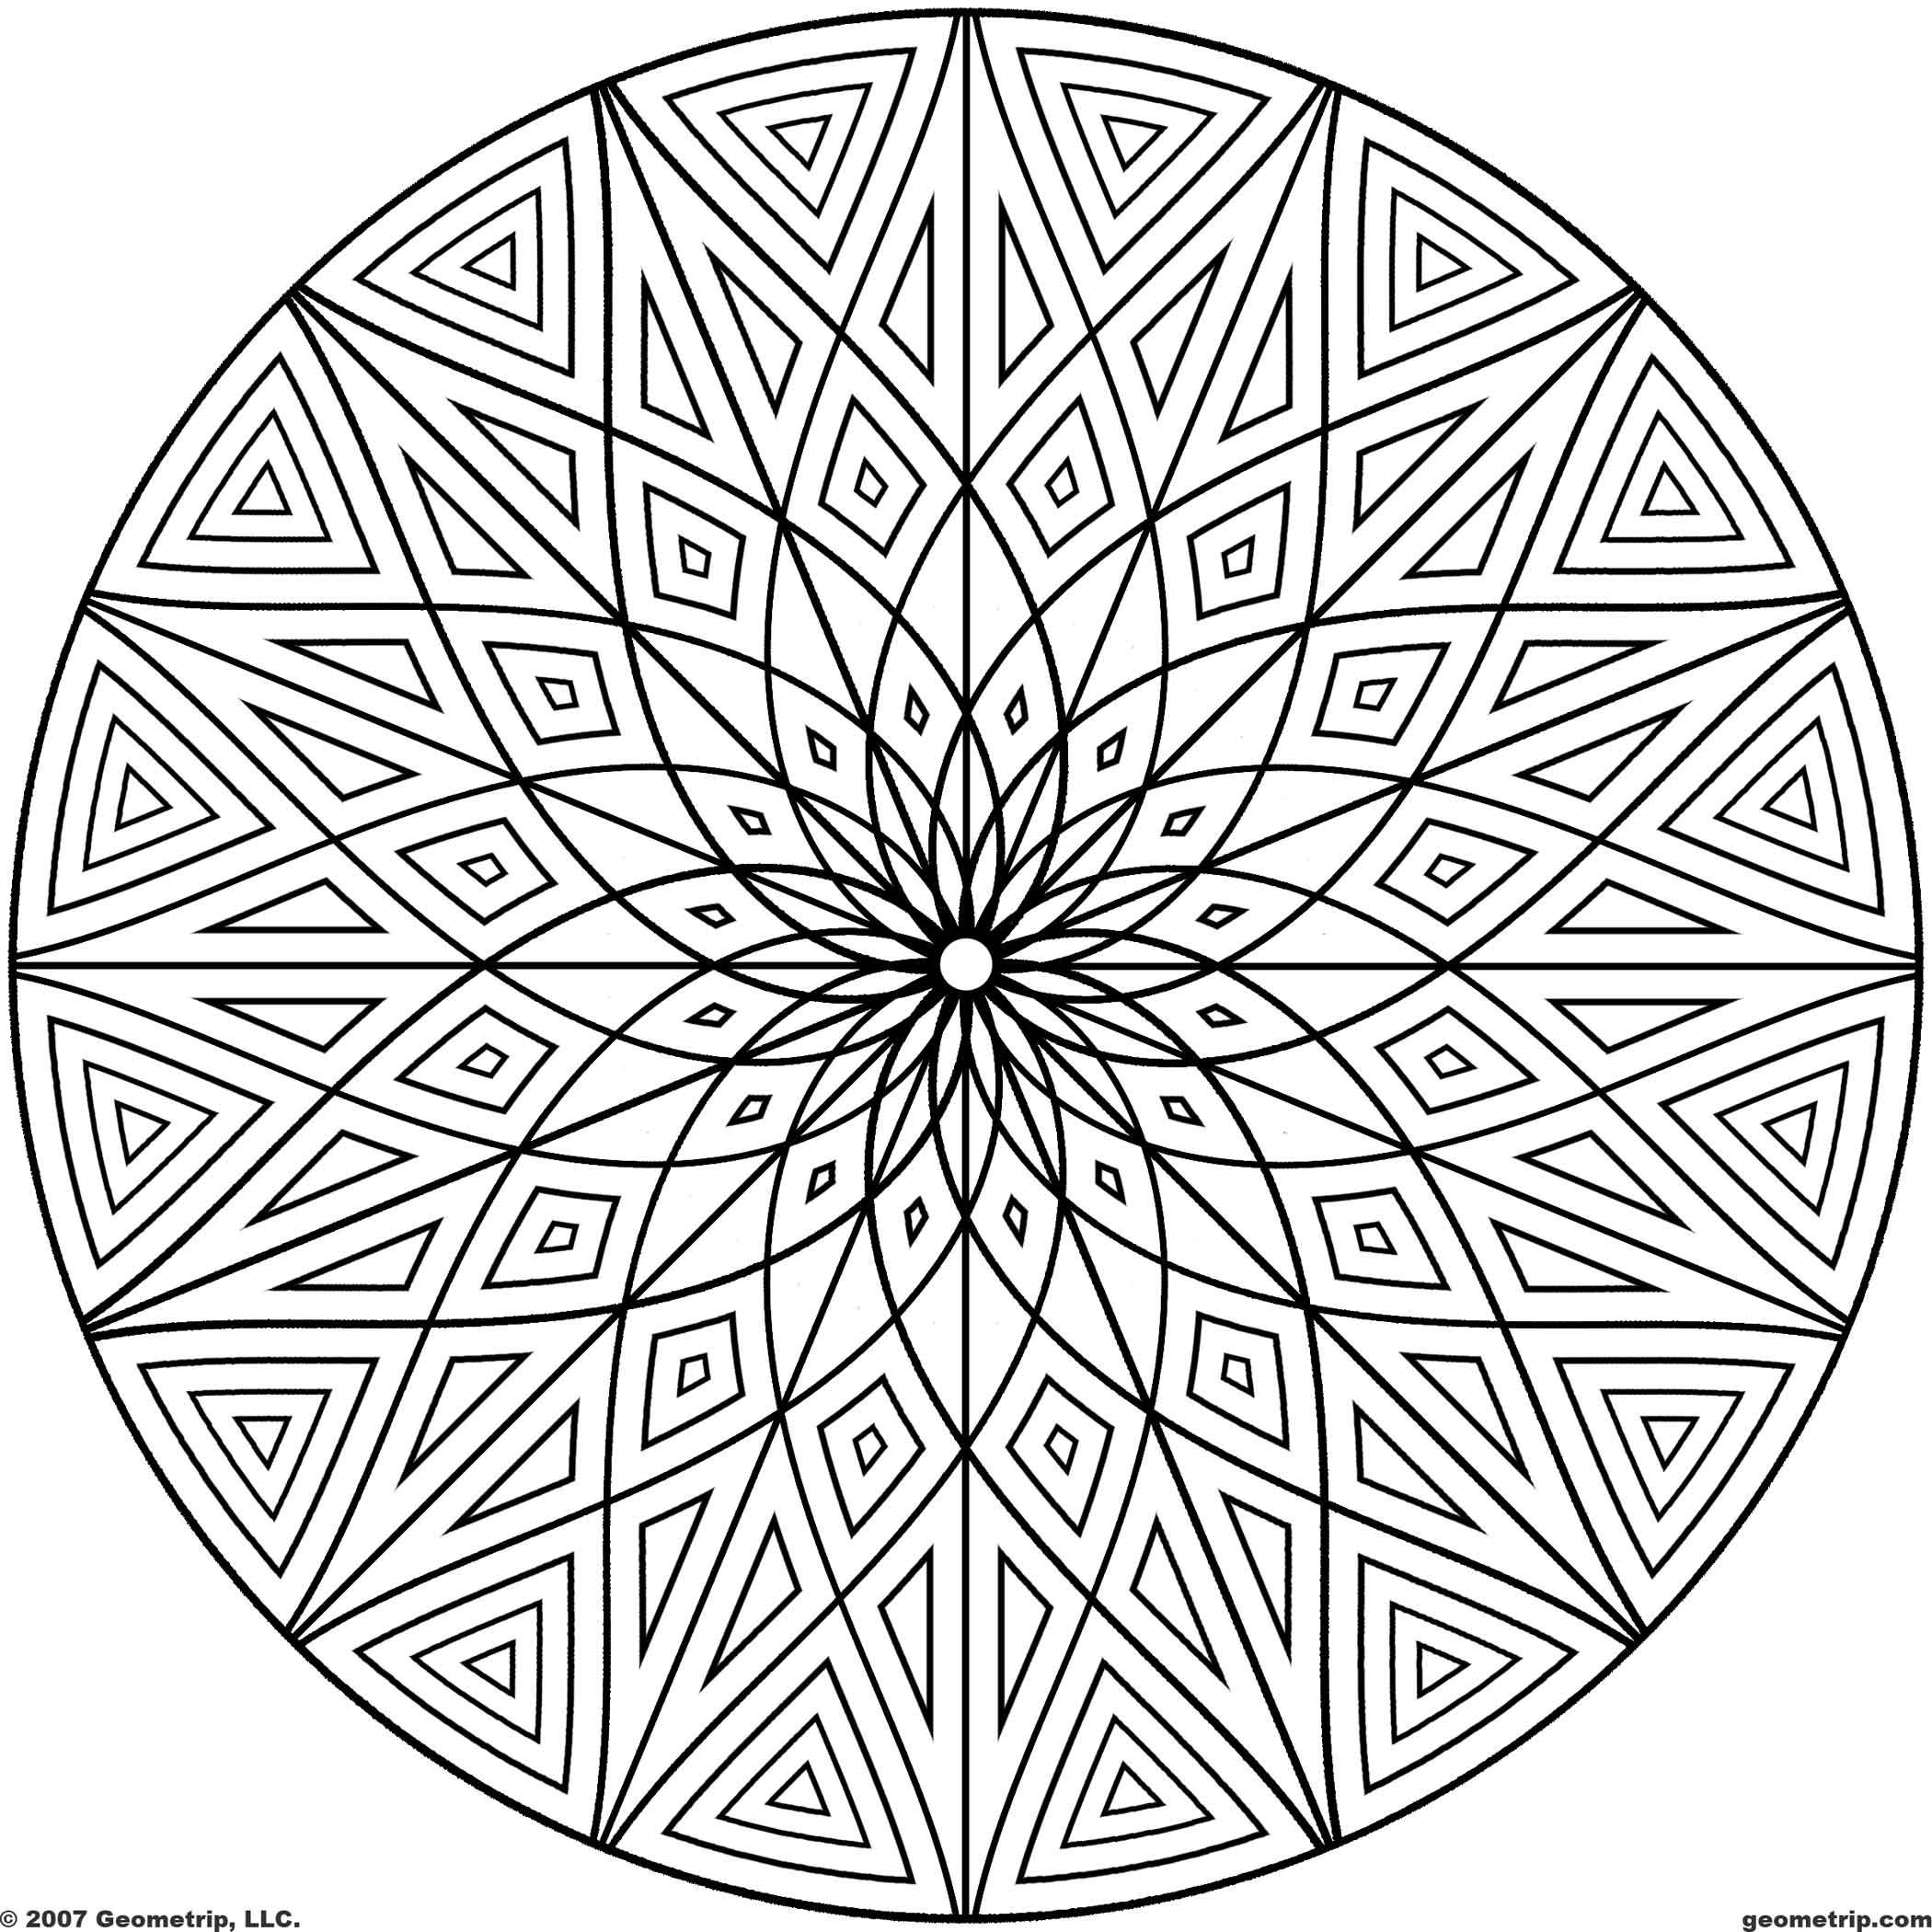 Starburst Mandala Geometric Coloring Pages Mandala Coloring Pages Cool Coloring Pages